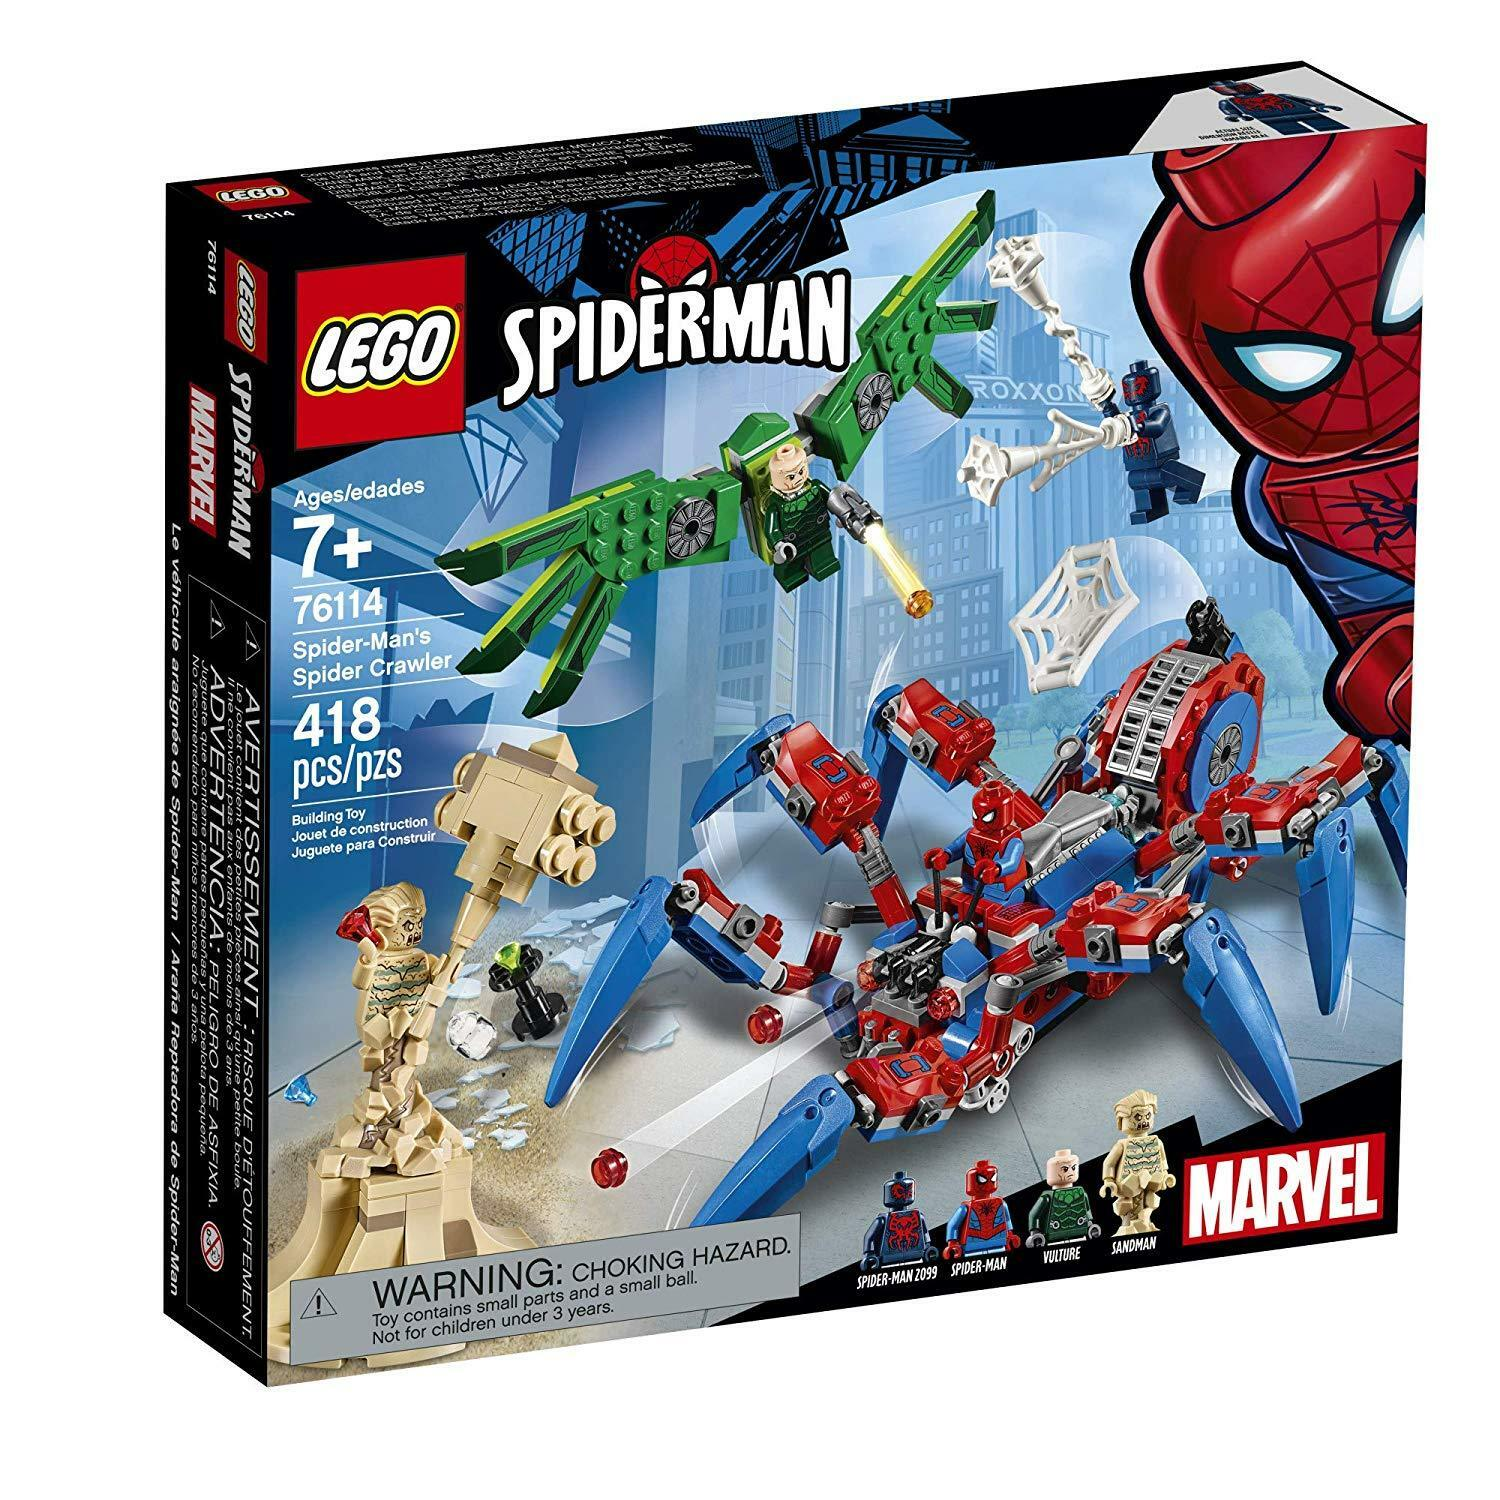 LEGO Marvel Super Heroes Spider-Man Spider Crawler 76114